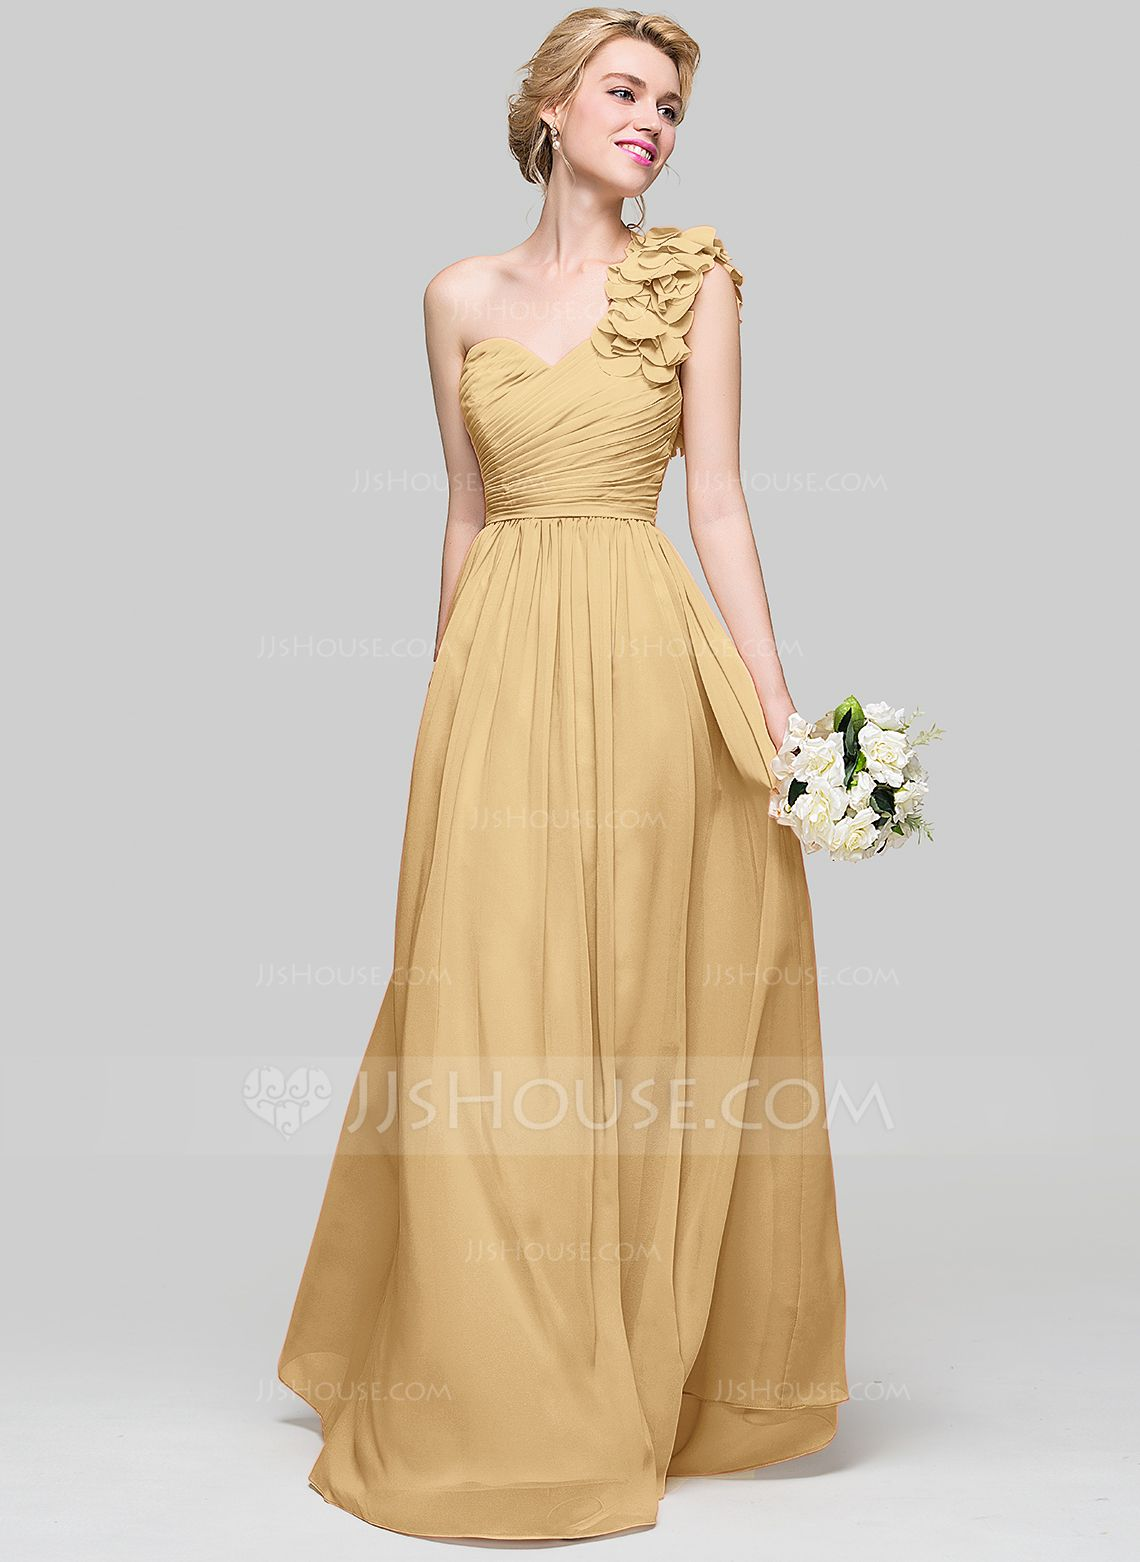 da0de175a6a2 A-Line/Princess One-Shoulder Floor-Length Chiffon Bridesmaid Dress With  Ruffle Flower(s) (007094023) - Bridesmaid Dresses - JJsHouse